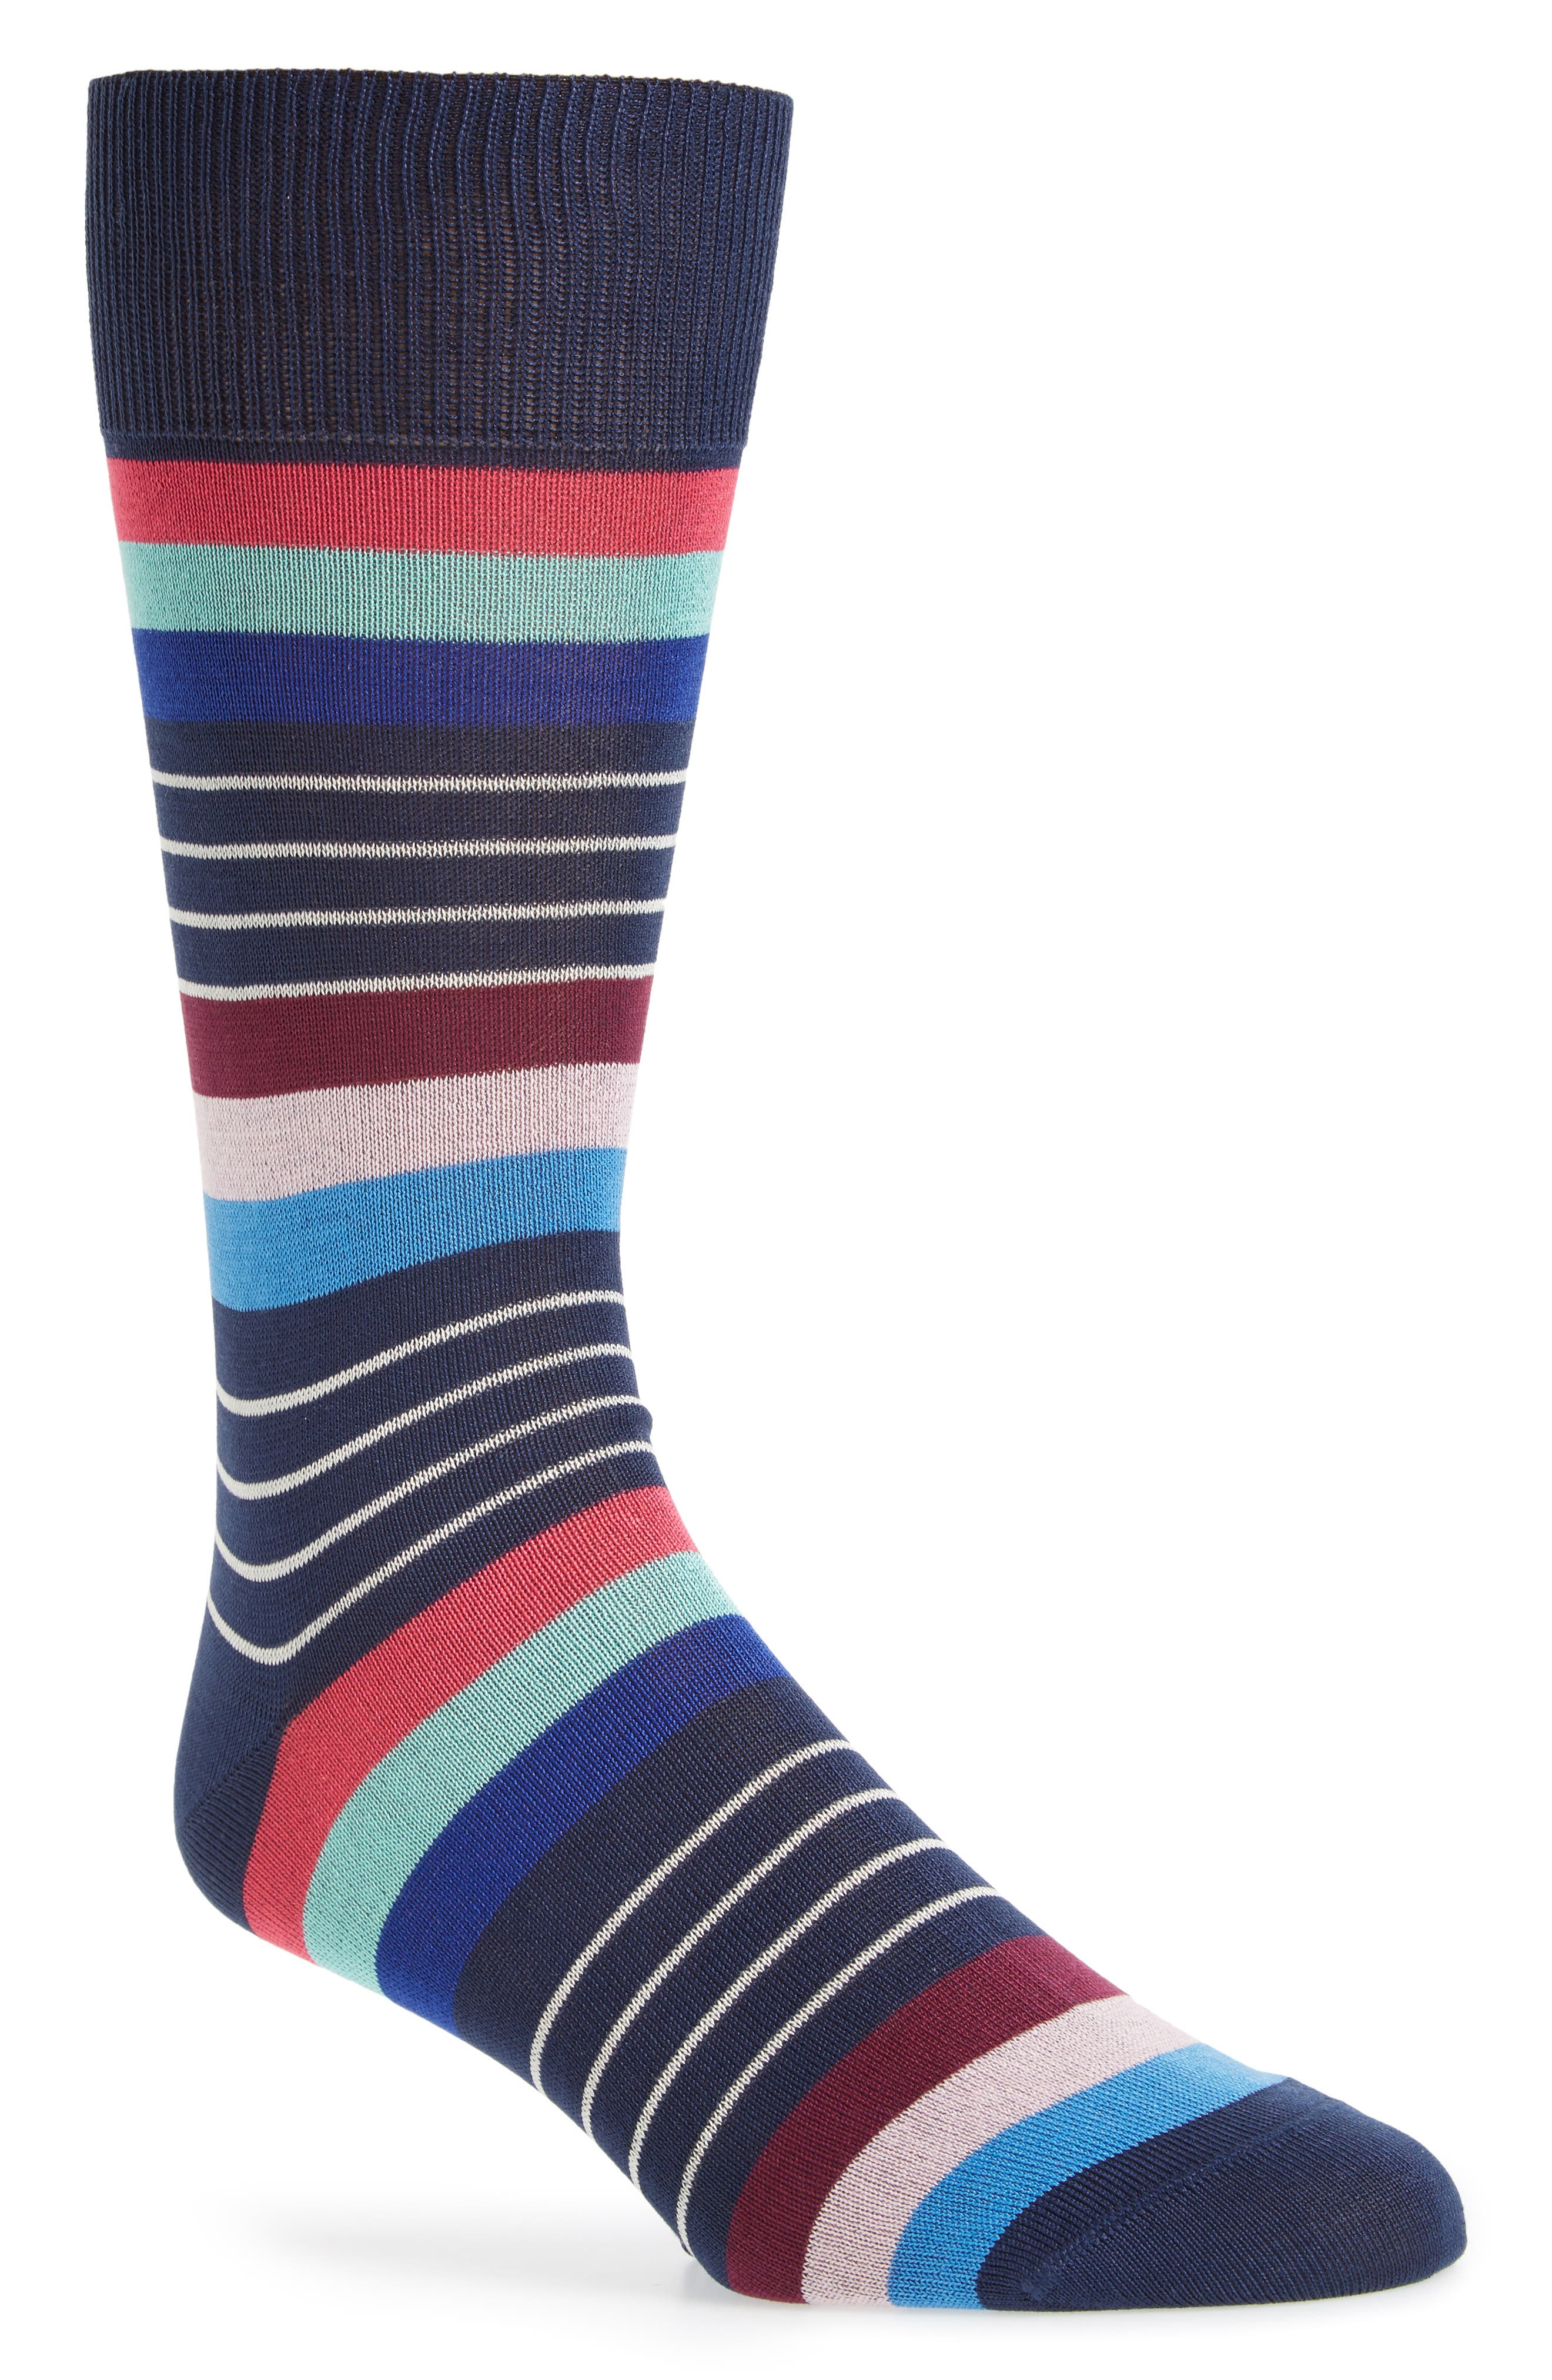 Main Image - Paul Smith Kel Stripe Crew Socks